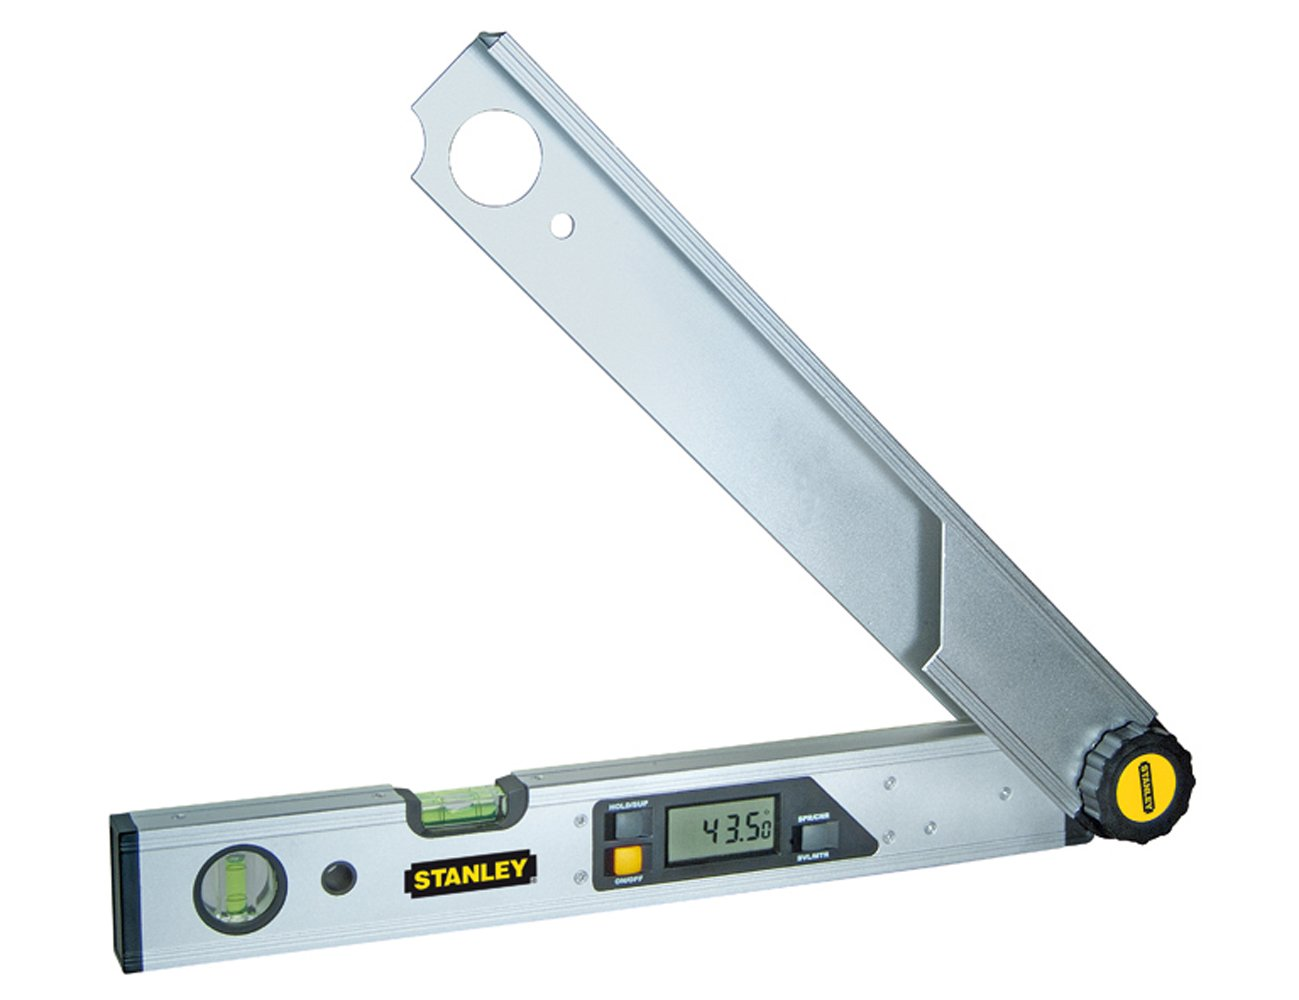 Stanley 0-42-087 Digital Angle Level, Silver